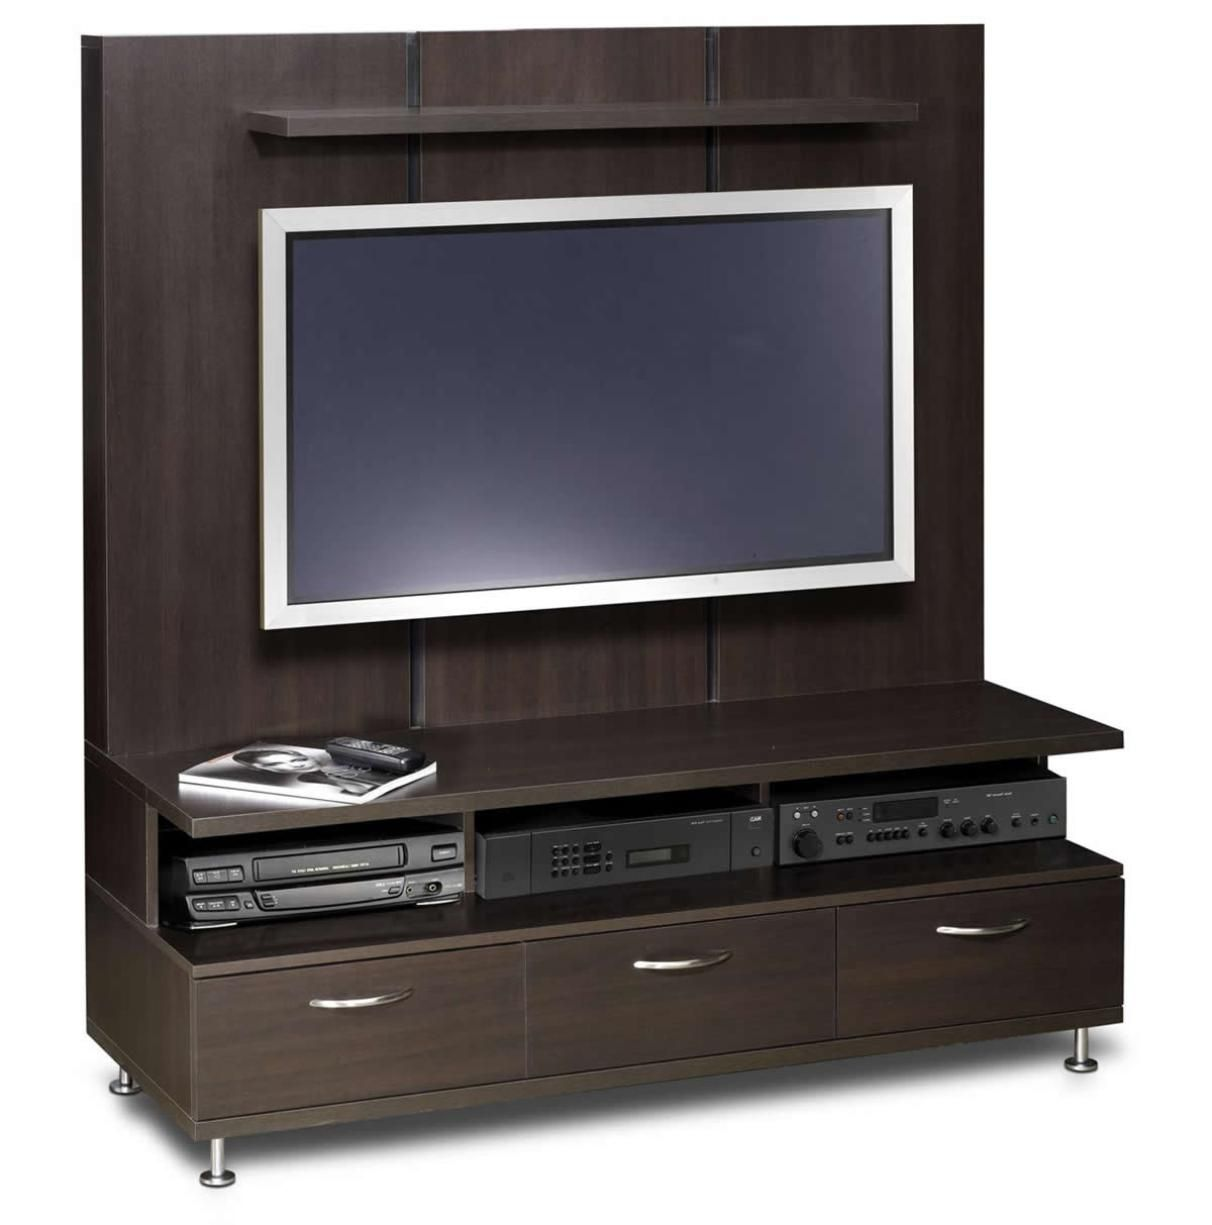 Woodworking Plans Plasma Tv Stand Plans Free Download Plasma Tv